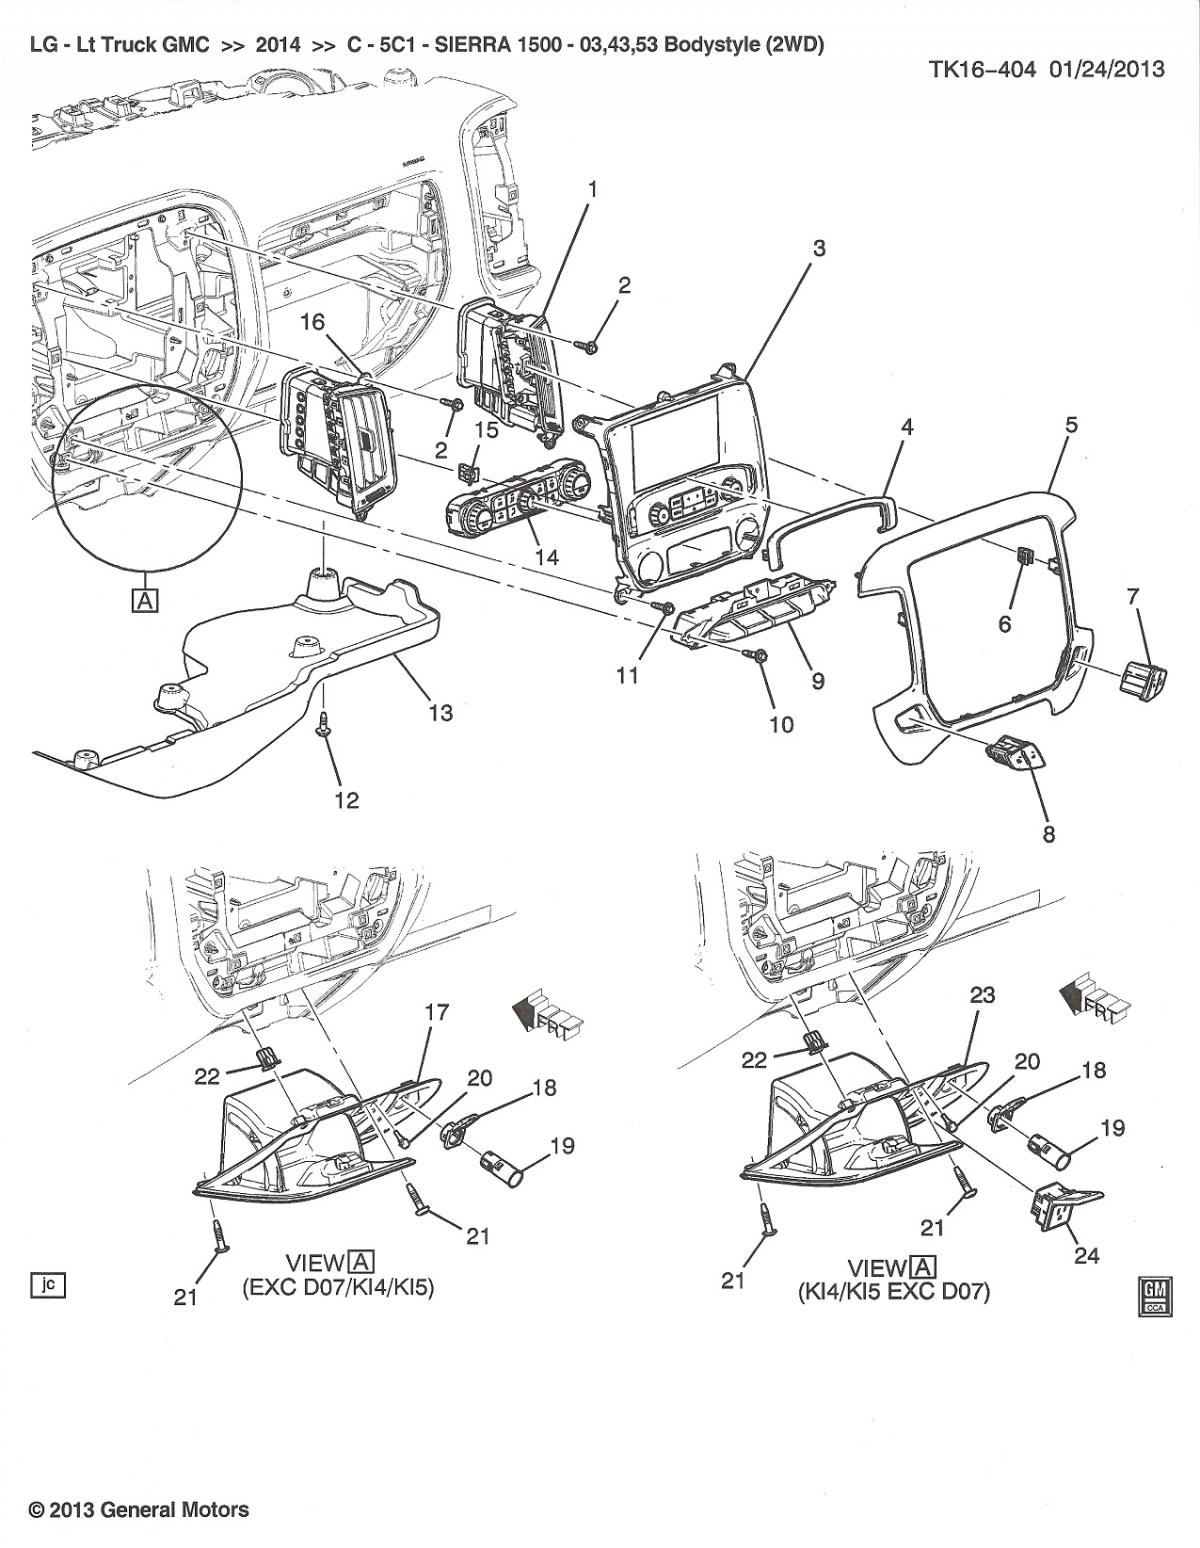 Eh Gmc Sierra Replacement Parts Motor Repalcement